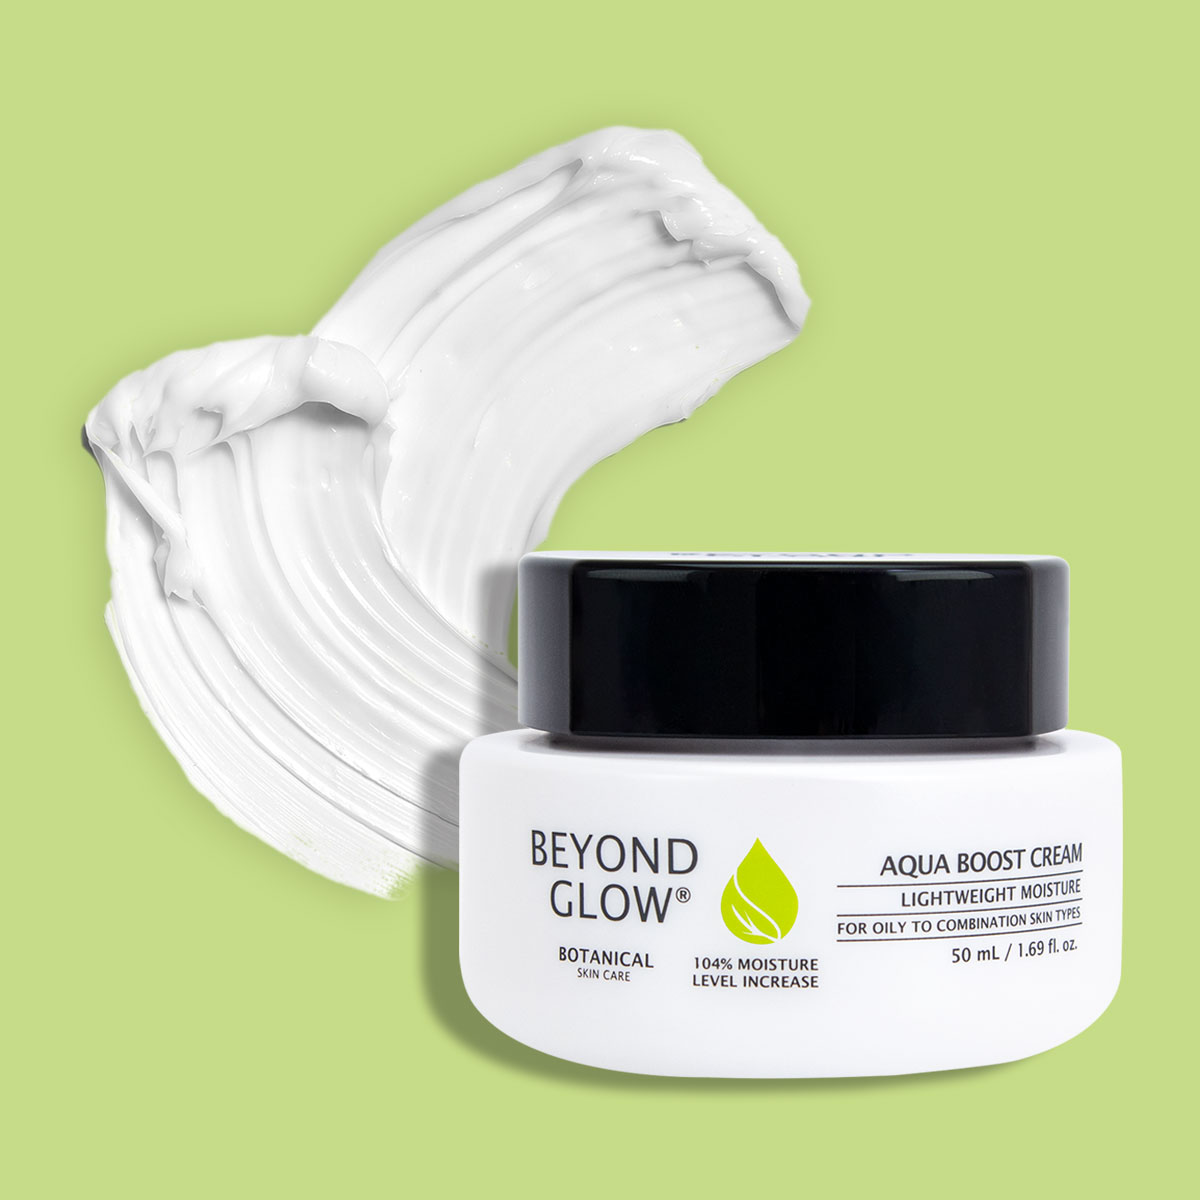 BeyondGlow-AquaBoostCream-Green